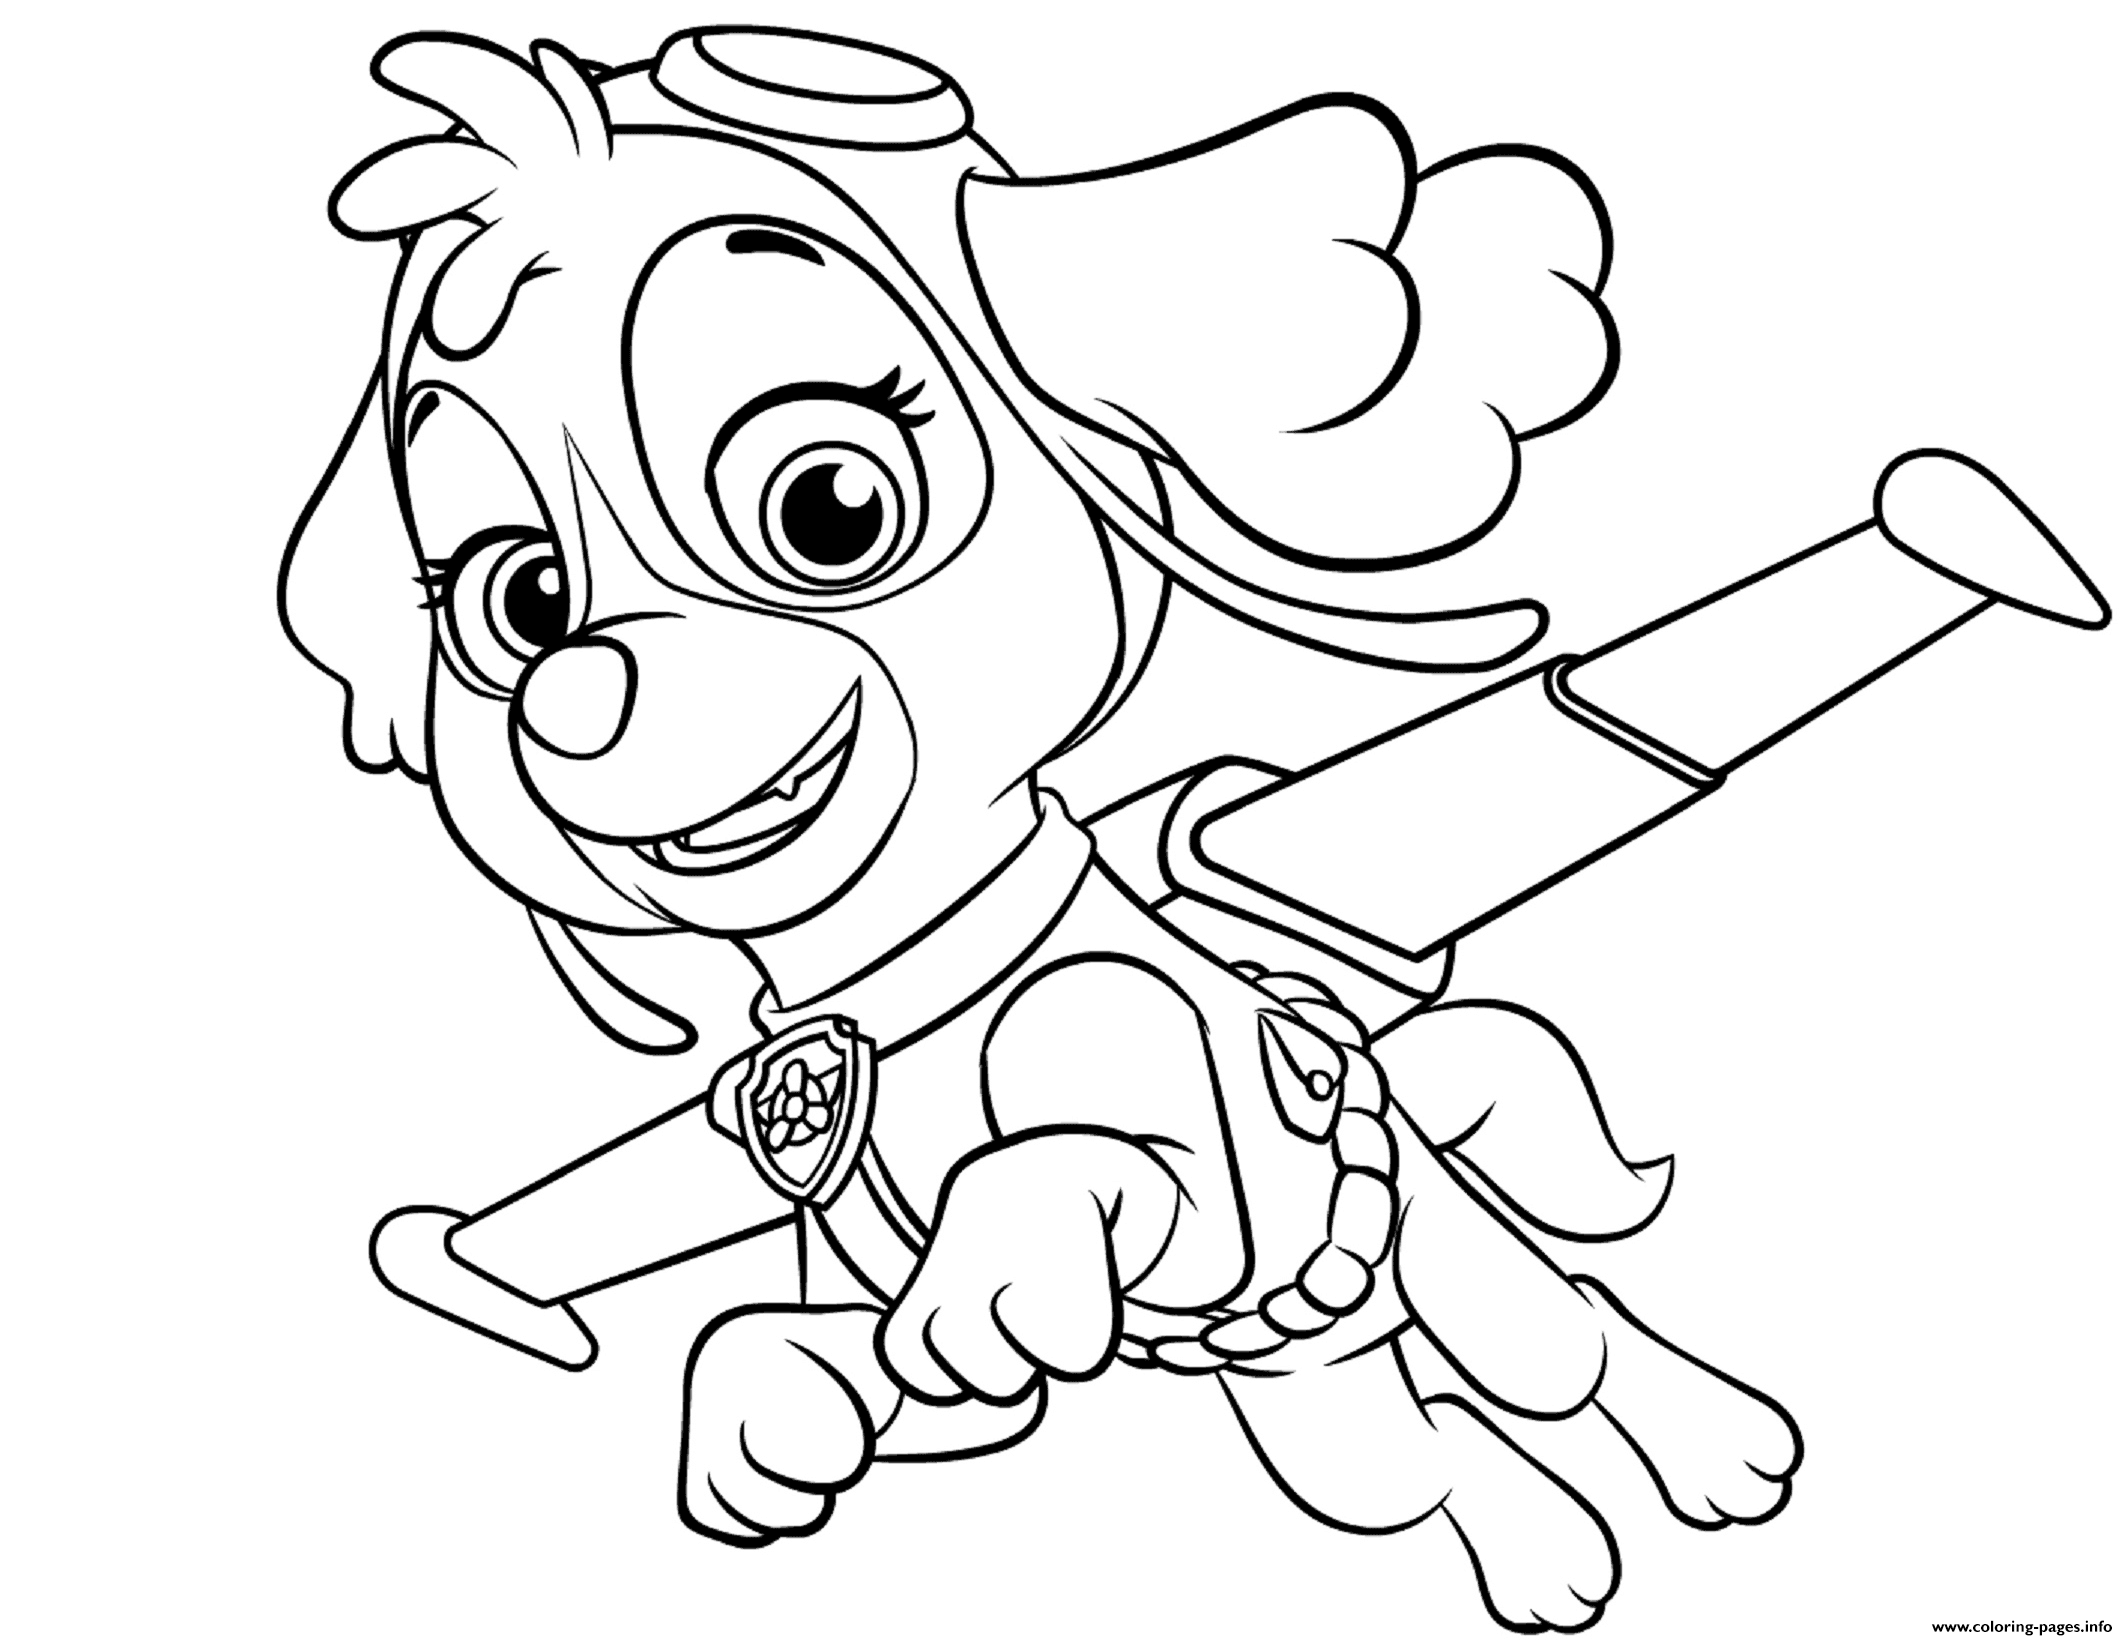 Skye Flying Paw Patrol coloring pages